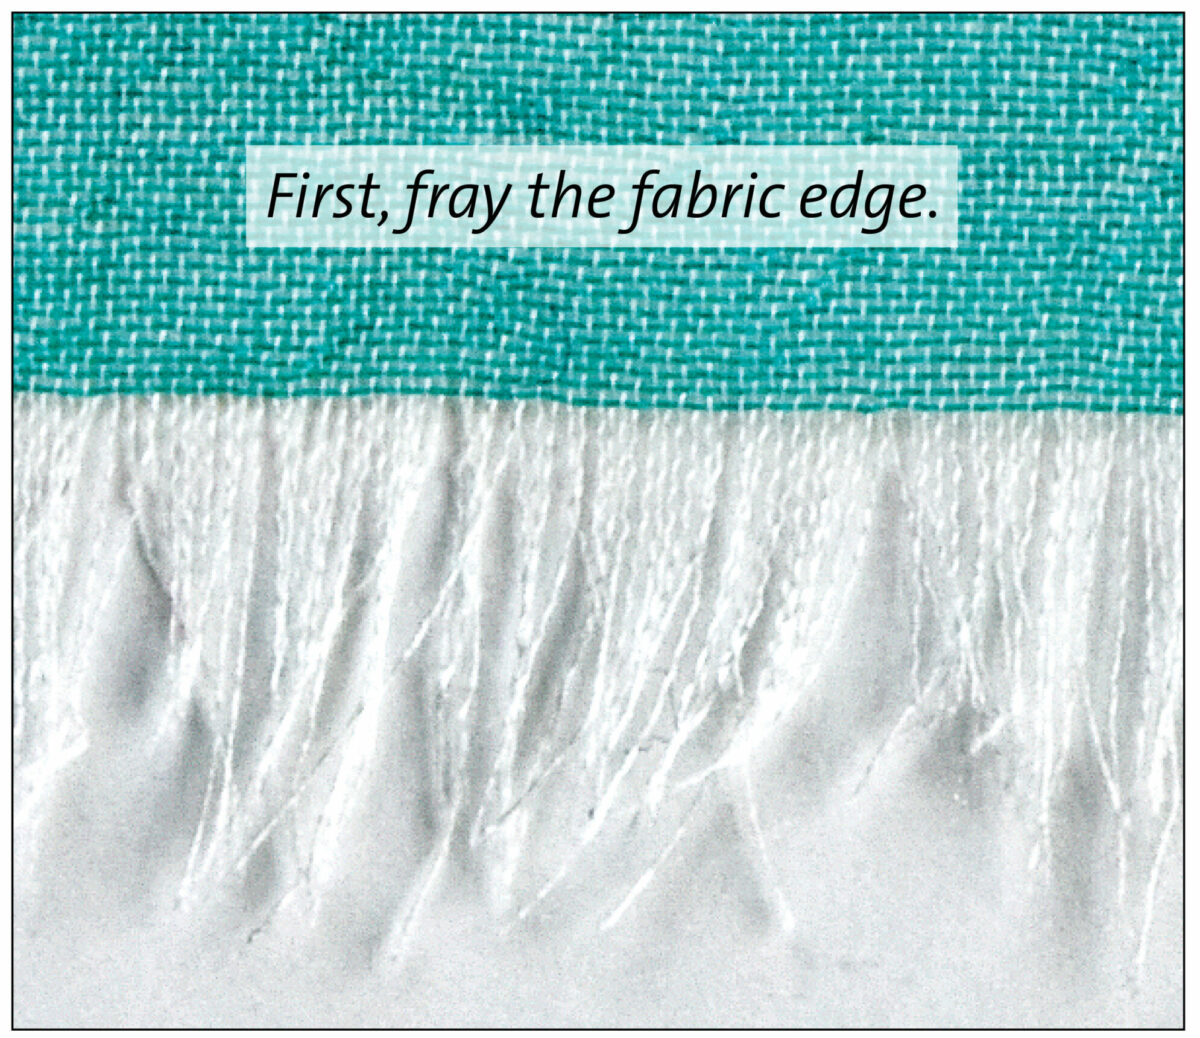 fray the edge of the fabric